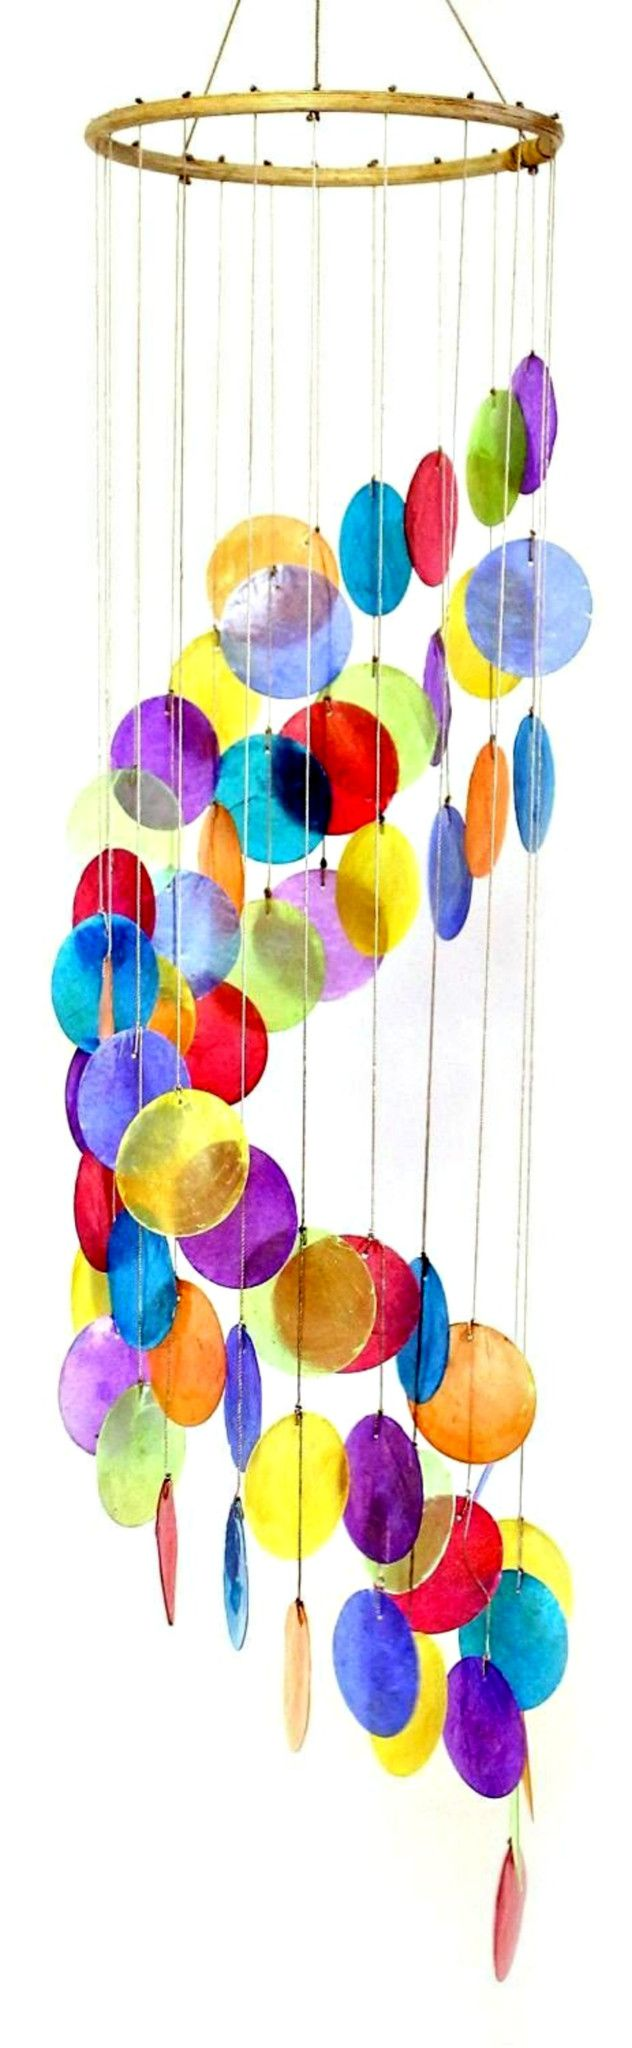 Rainbow Colored Spiral Capiz Chime Windchime Suncatcher